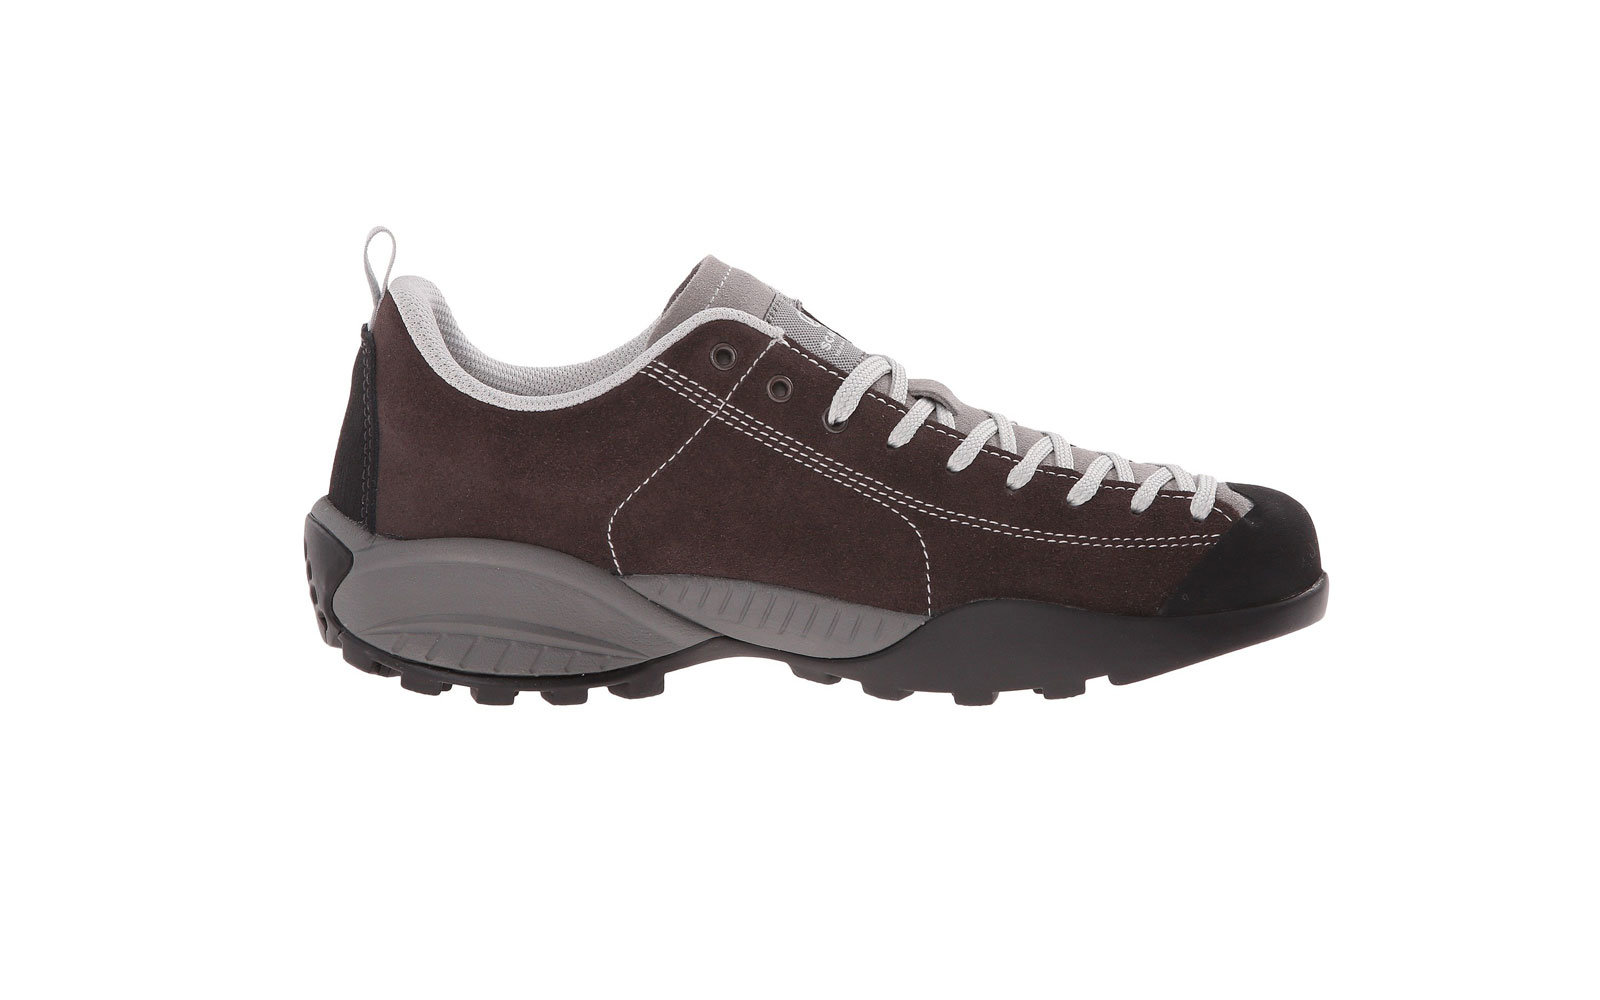 Men's Walking hiking Shoes